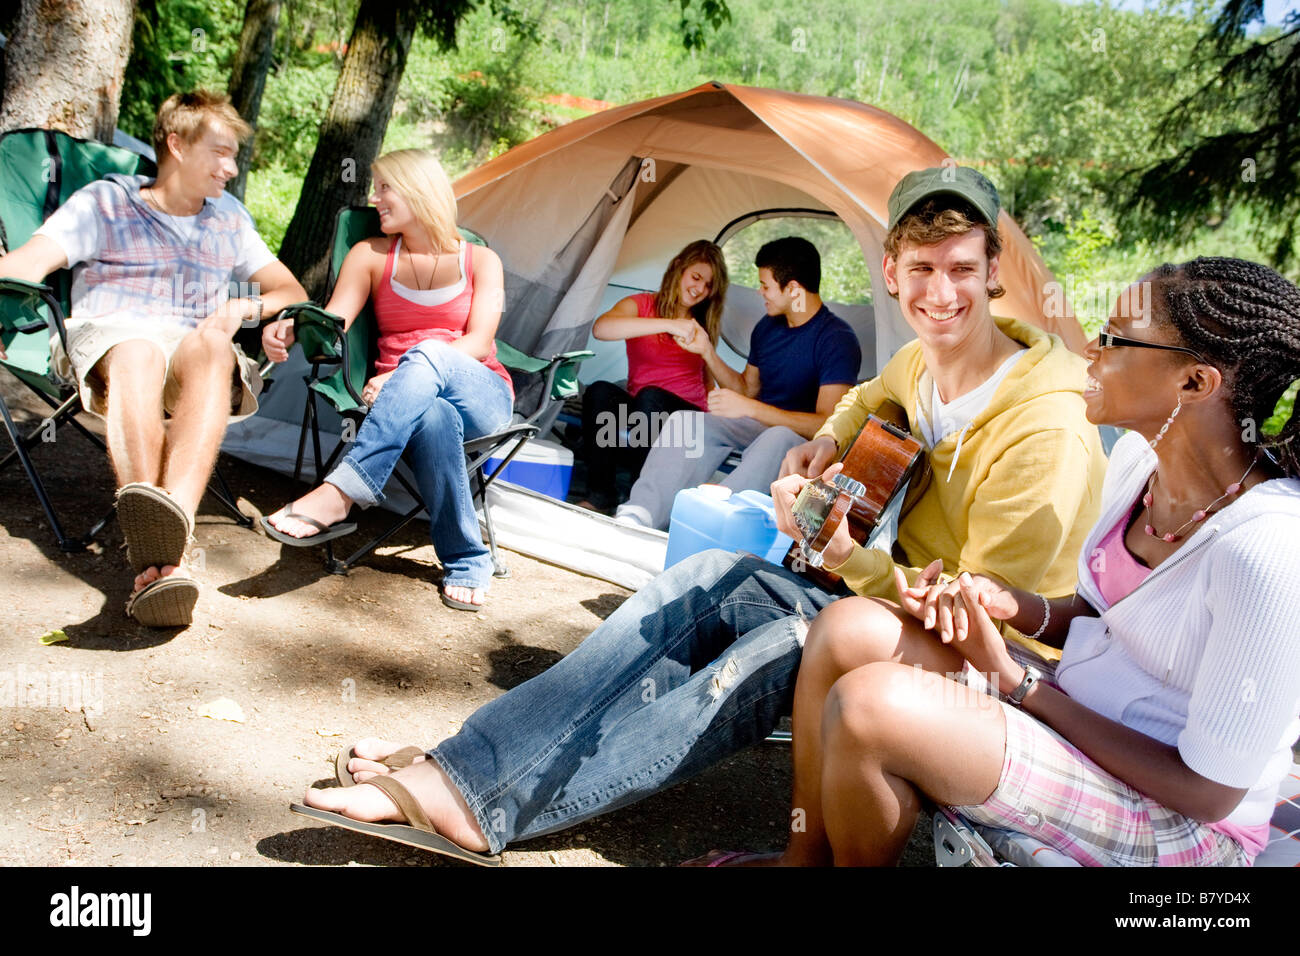 Group of young people at a campsite - Stock Image